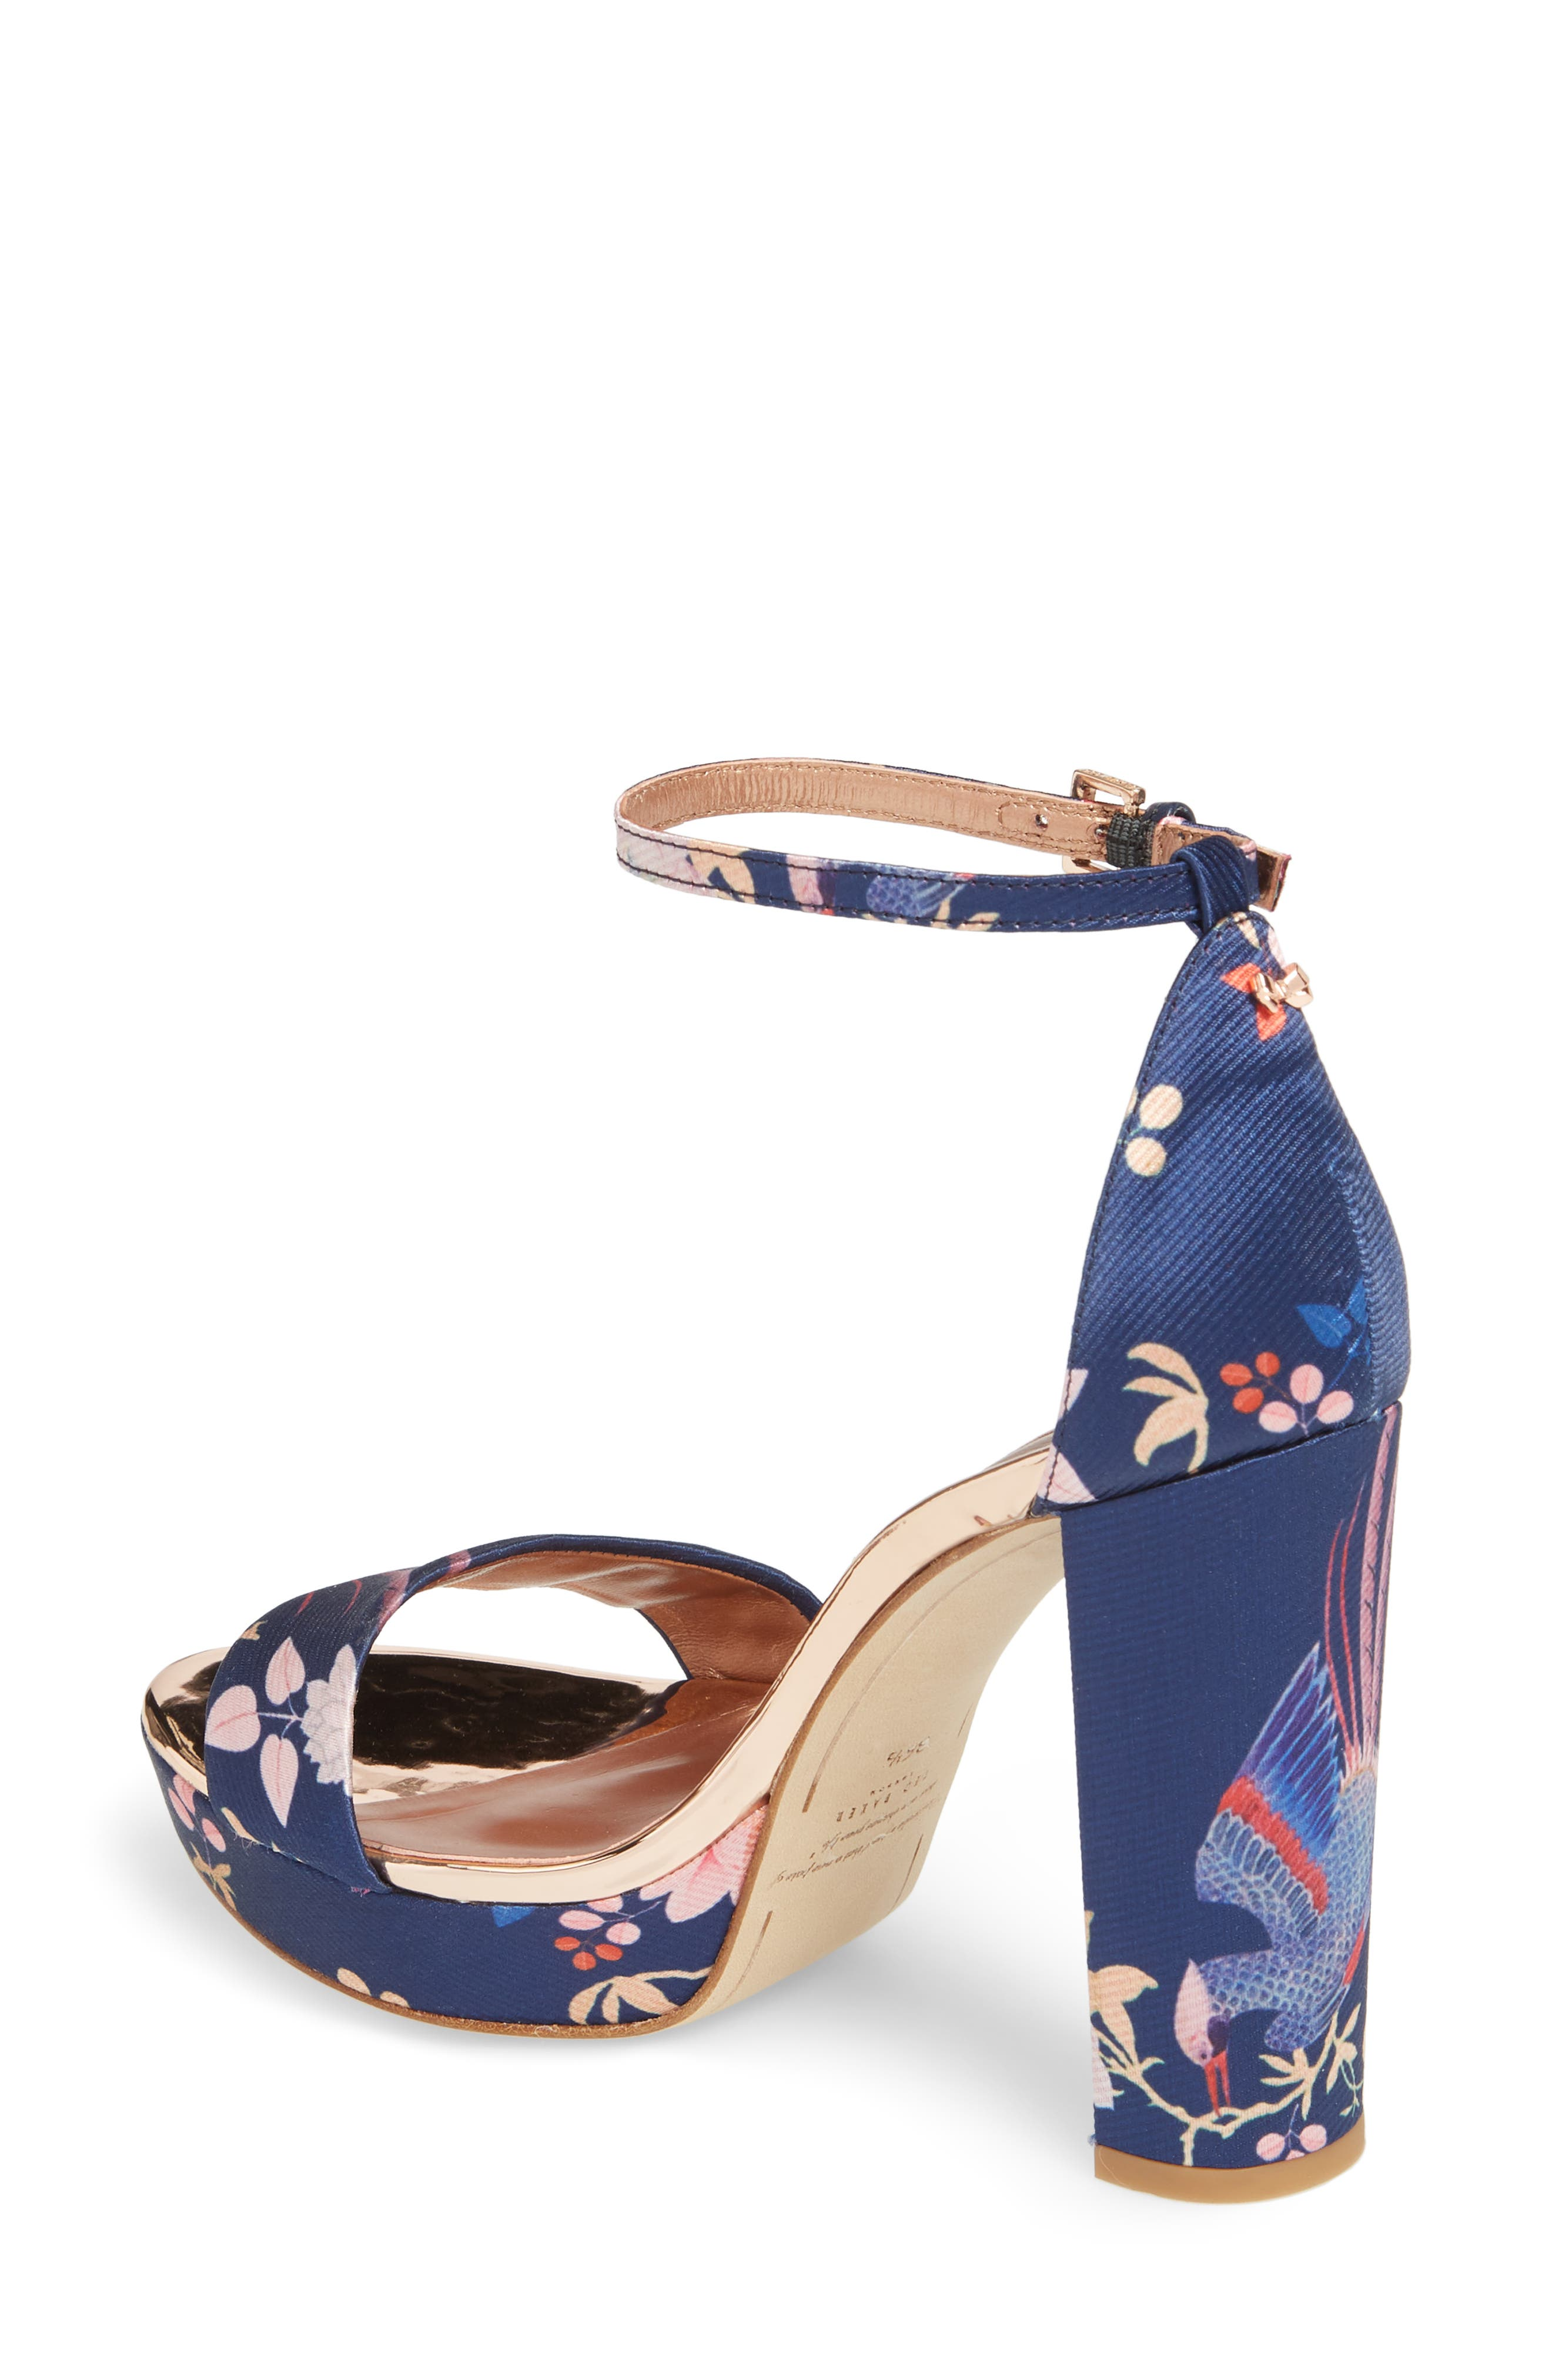 Junaa Sandal,                             Alternate thumbnail 2, color,                             Navy Fabric